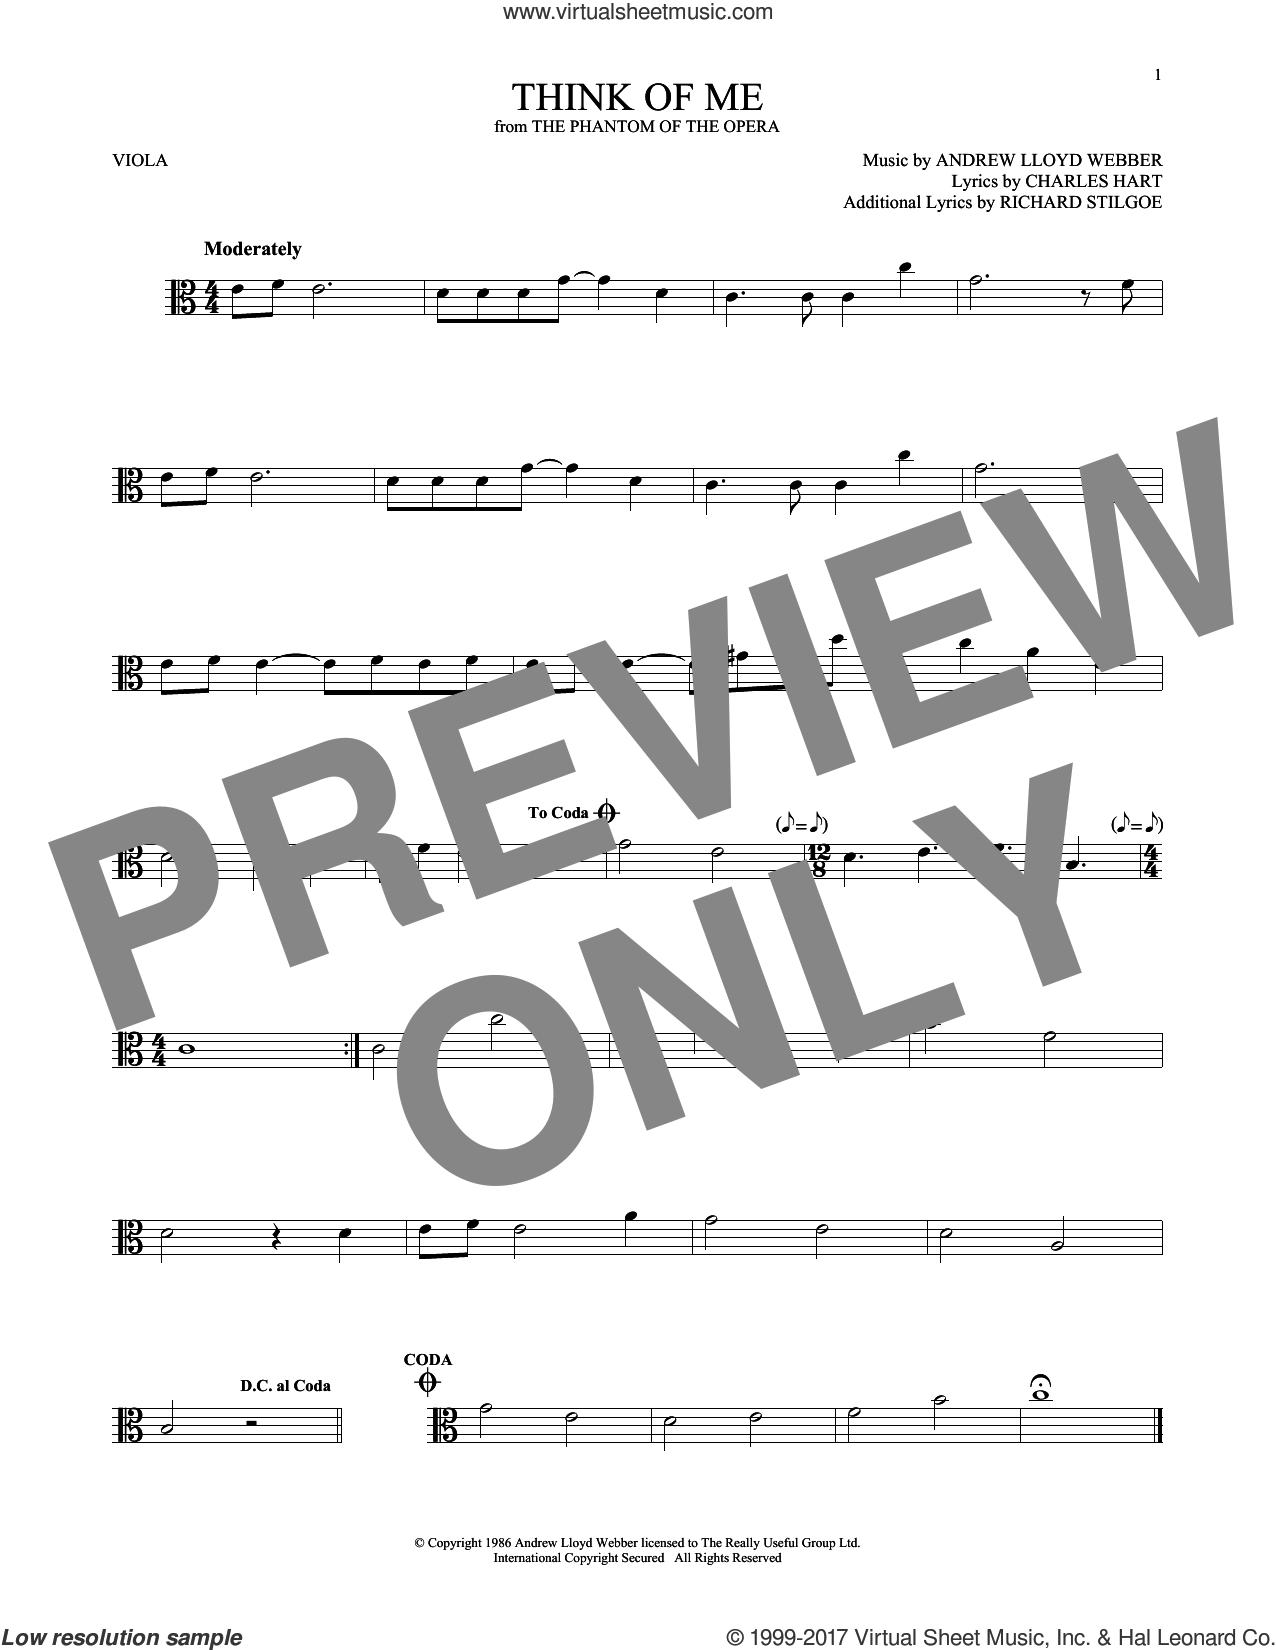 Think Of Me sheet music for viola solo by Andrew Lloyd Webber, Charles Hart and Richard Stilgoe, intermediate skill level